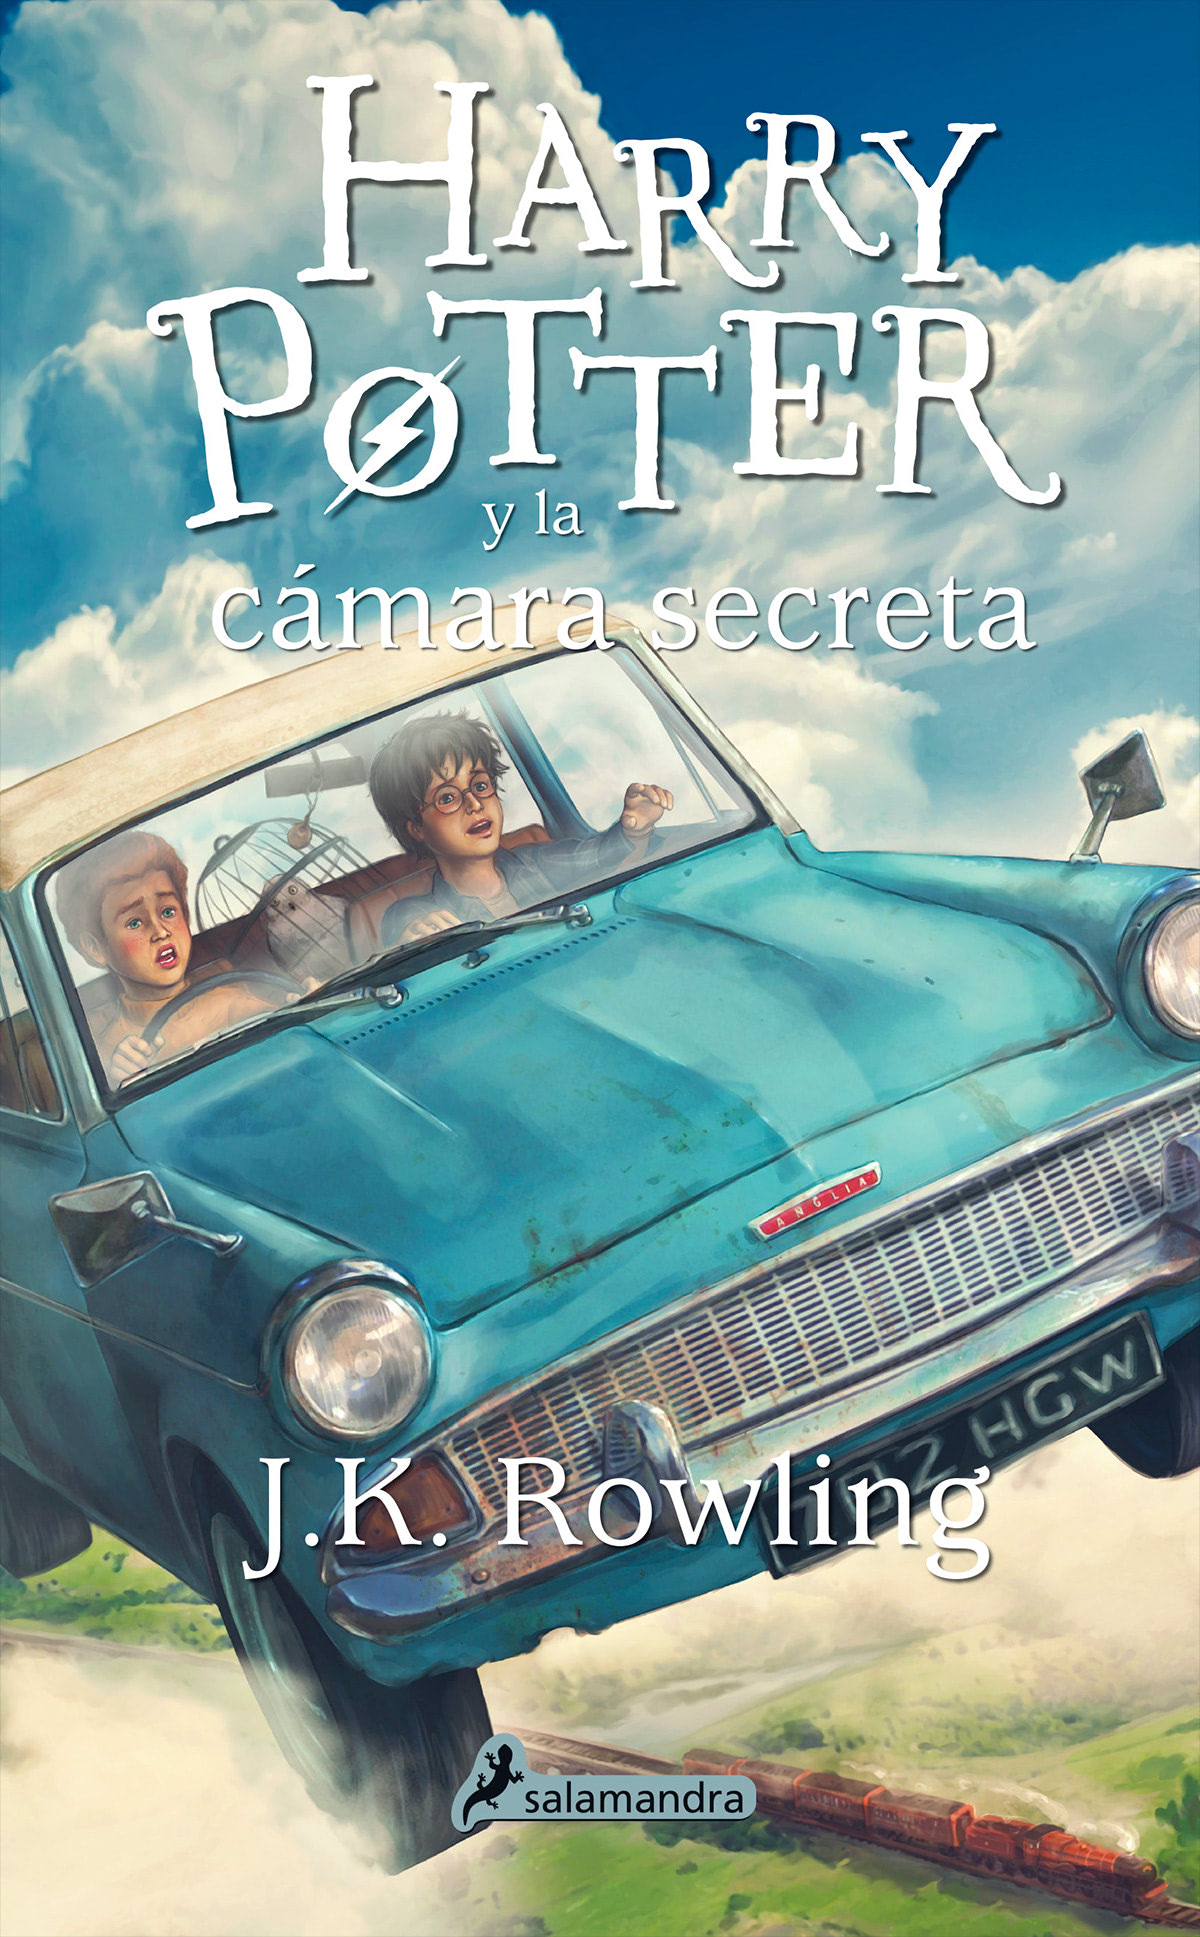 'Chamber of Secrets' Spanish anniversary edition